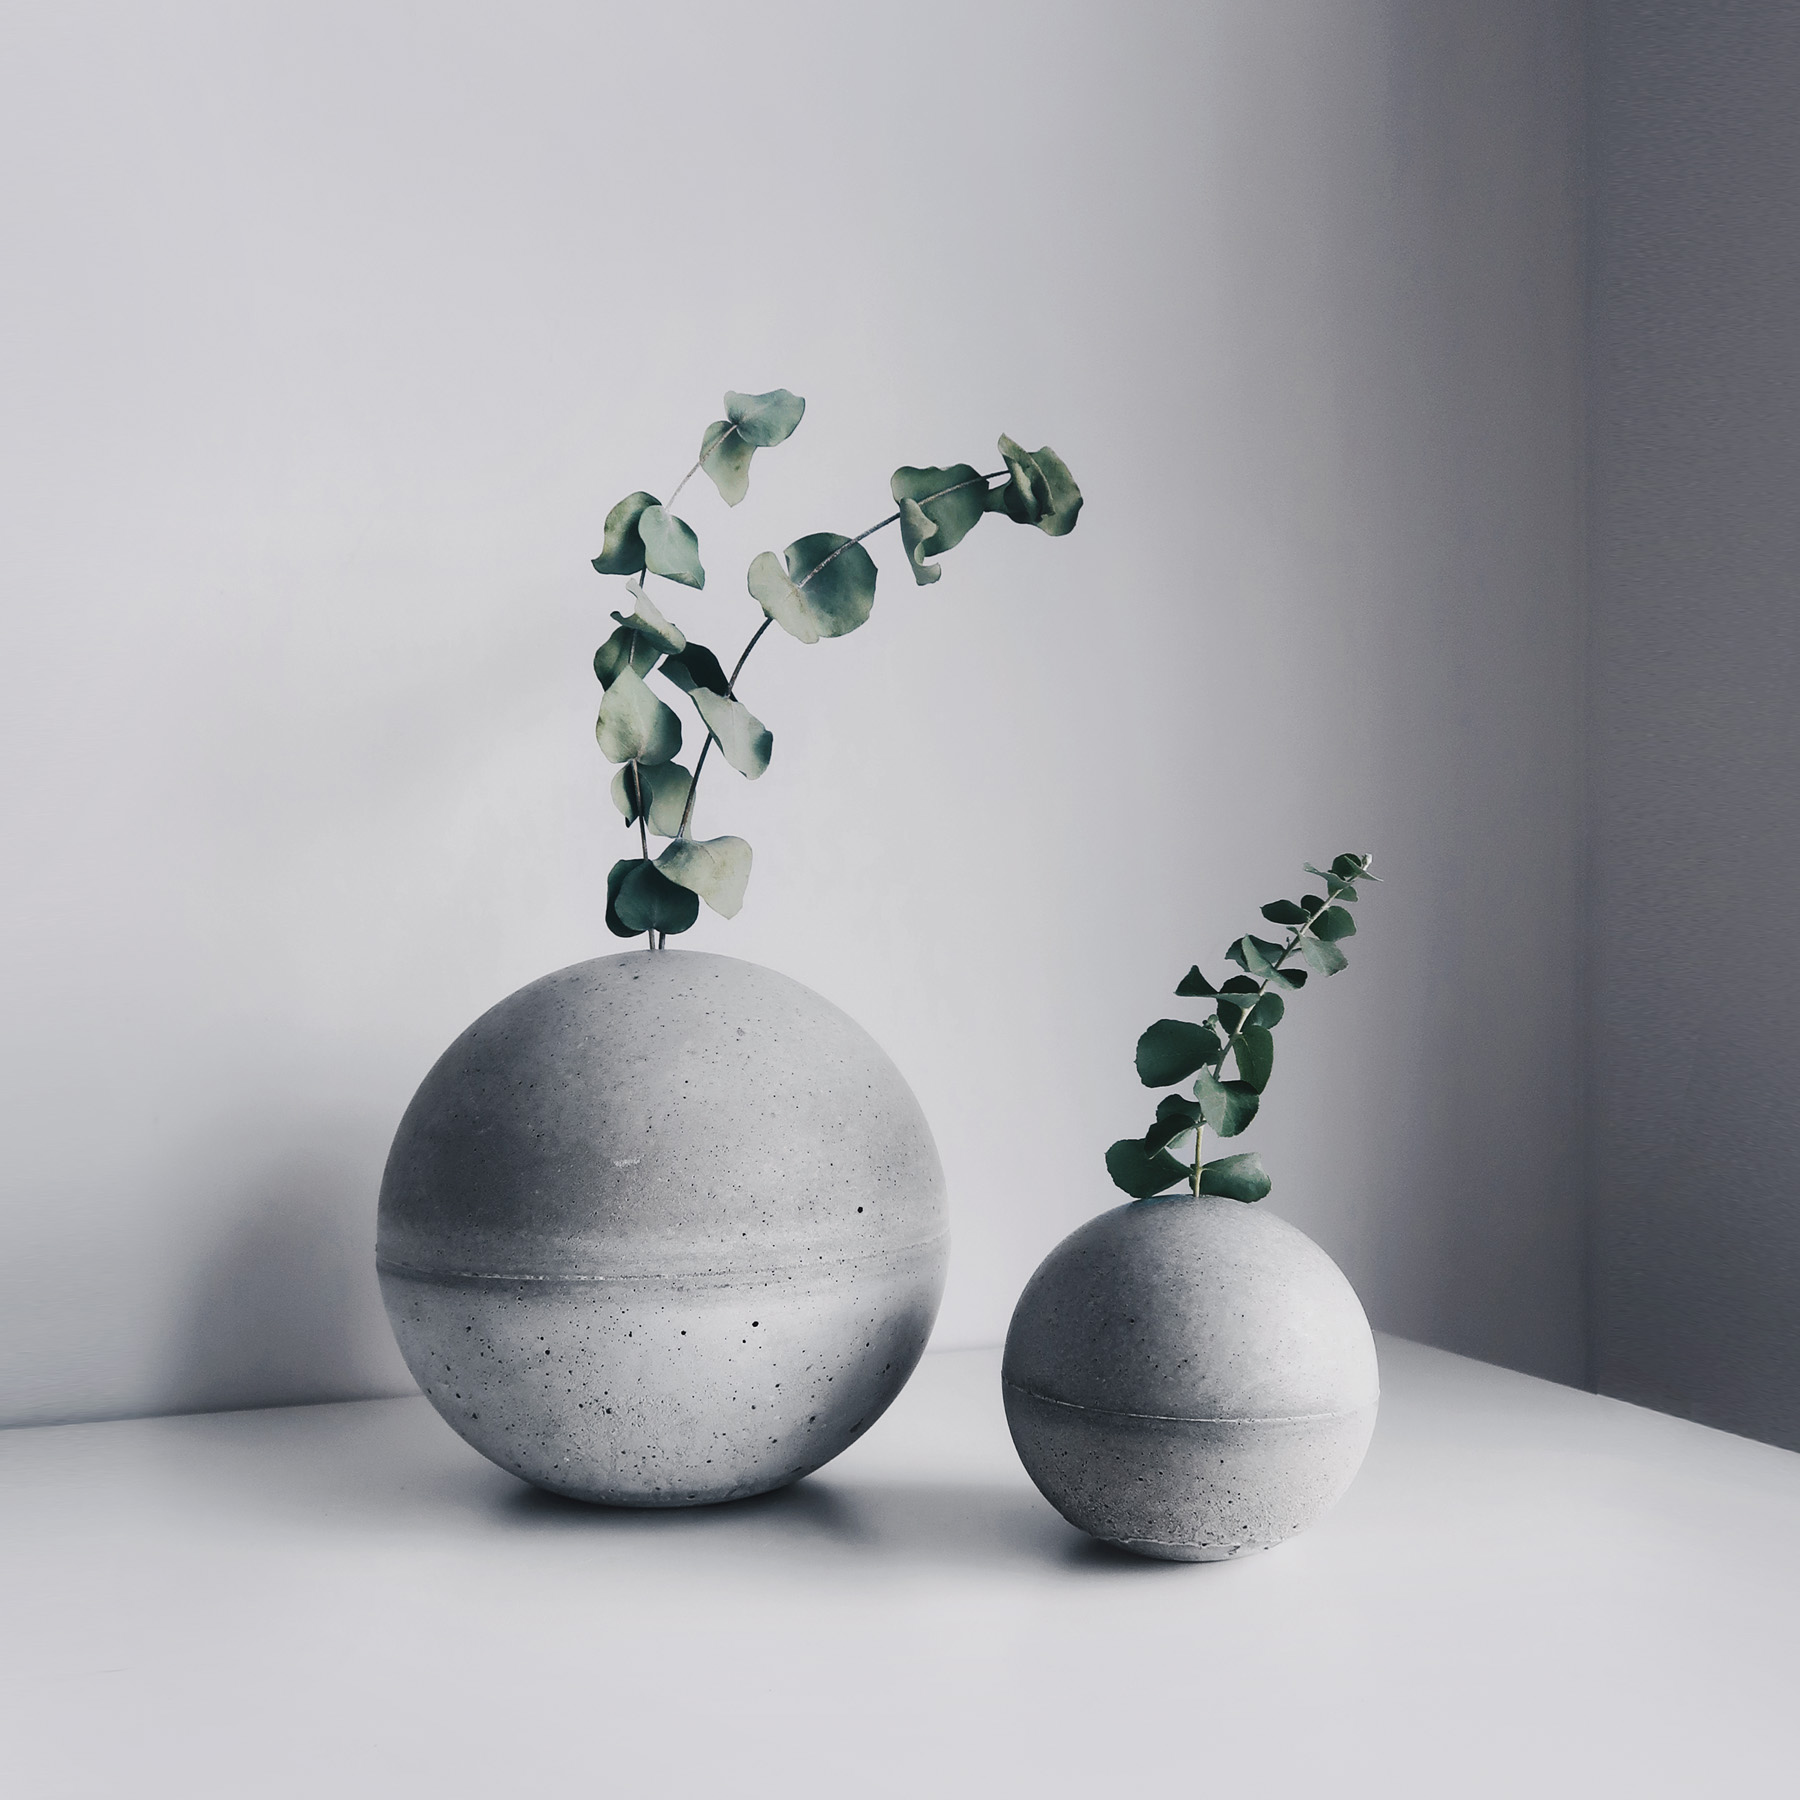 PLANET 小星球水泥花器・紙鎮・線香座 / Concrete vase, paper weight, incense holder